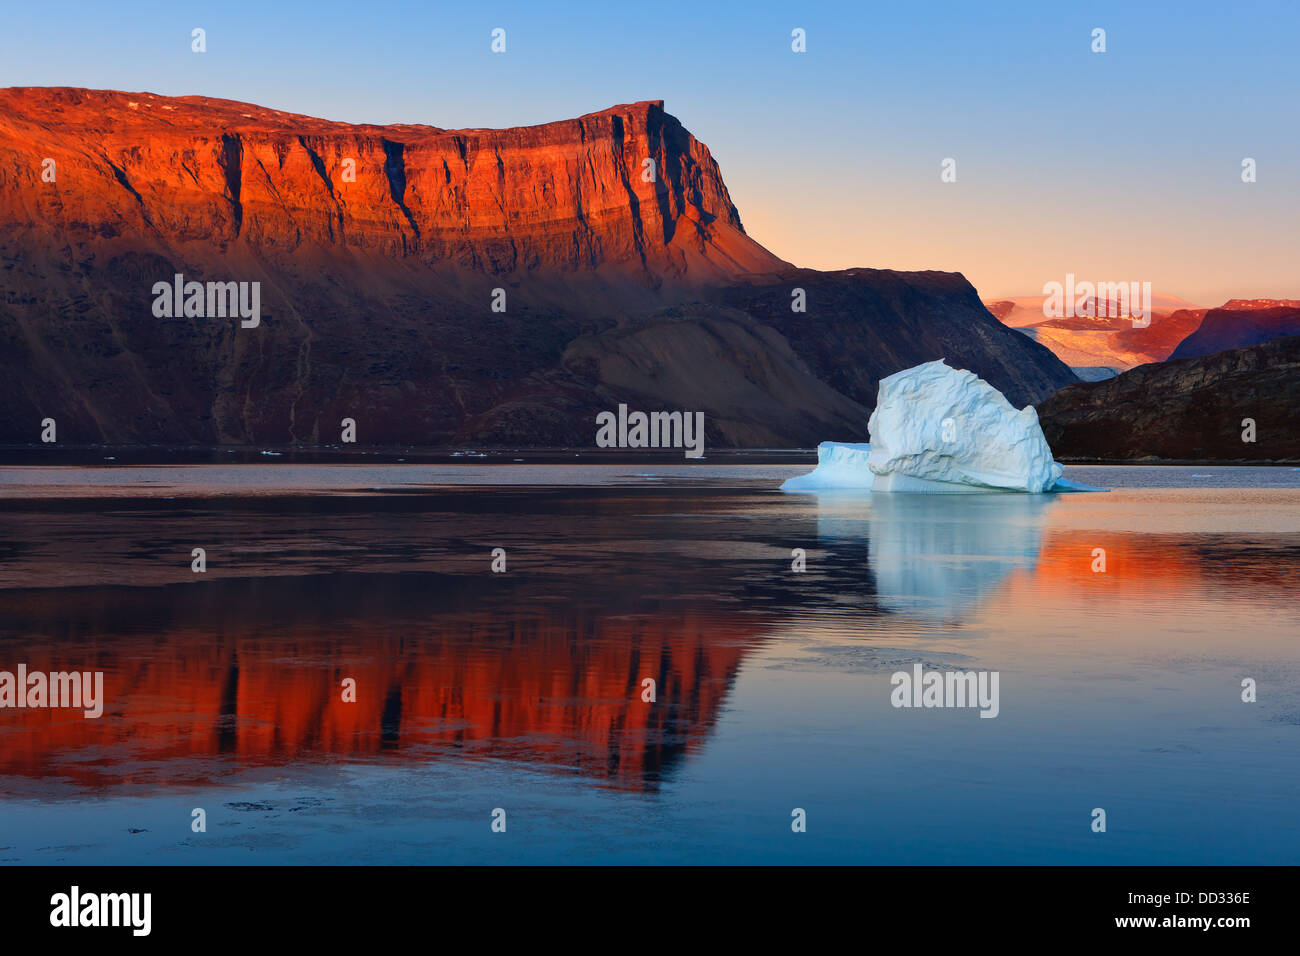 Sunrise in the Røde Fjord, Scoresby sund, Greenland - Stock Image